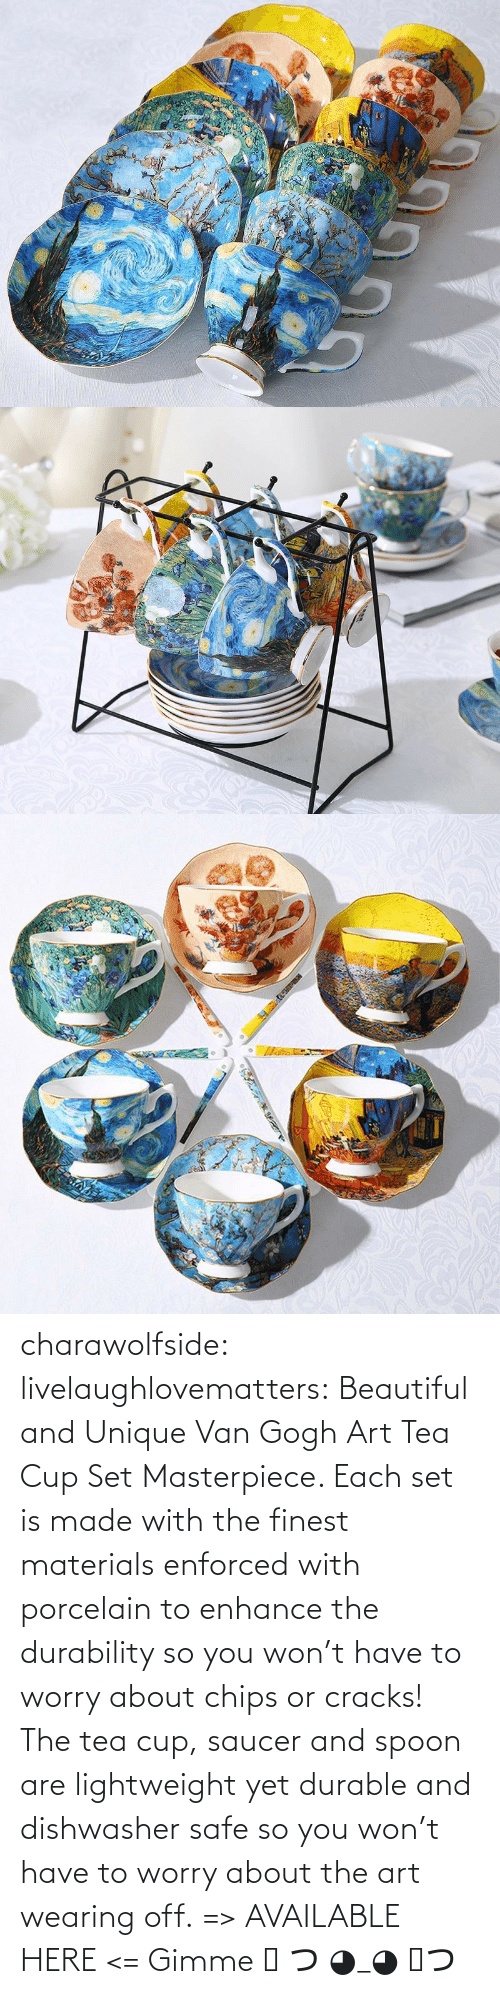 tea: charawolfside: livelaughlovematters:  Beautiful and Unique Van Gogh Art Tea Cup Set Masterpiece. Each set is made with the finest materials enforced with porcelain to enhance the durability so you won't have to worry about chips or cracks! The tea cup, saucer and spoon are lightweight yet durable and dishwasher safe so you won't have to worry about the art wearing off. => AVAILABLE HERE <=    Gimme ༼ つ ◕_◕ ༽つ